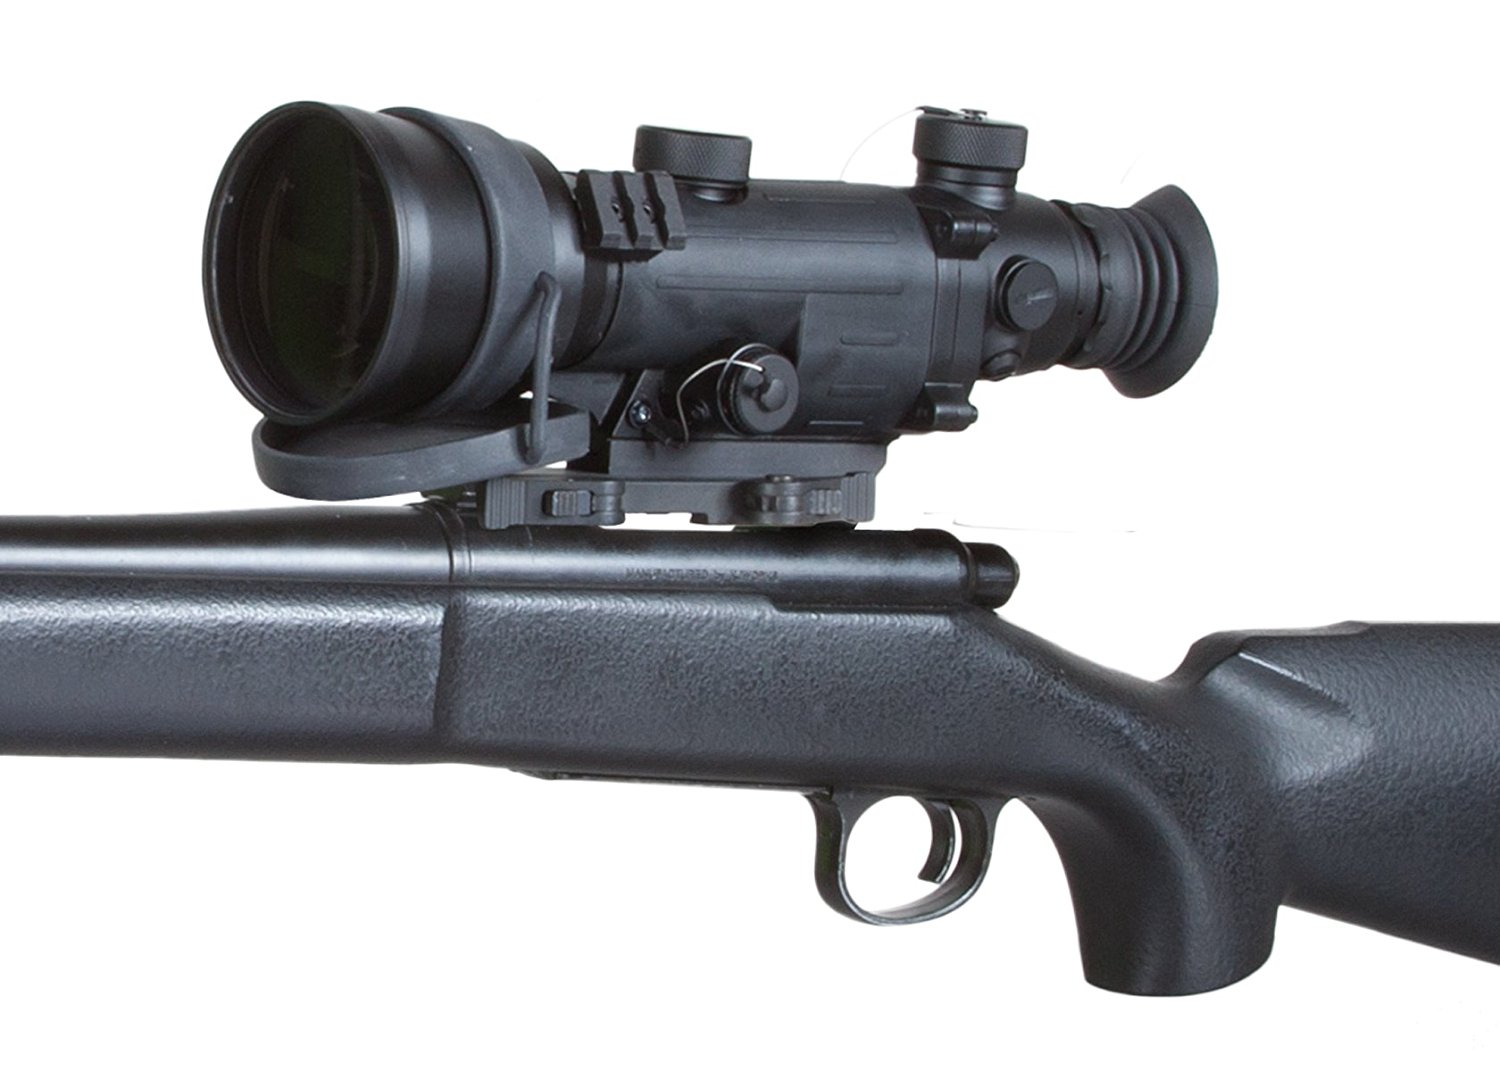 Armasight Vampire 3x CORE IIT Night Vision Rifle Scope Mounted